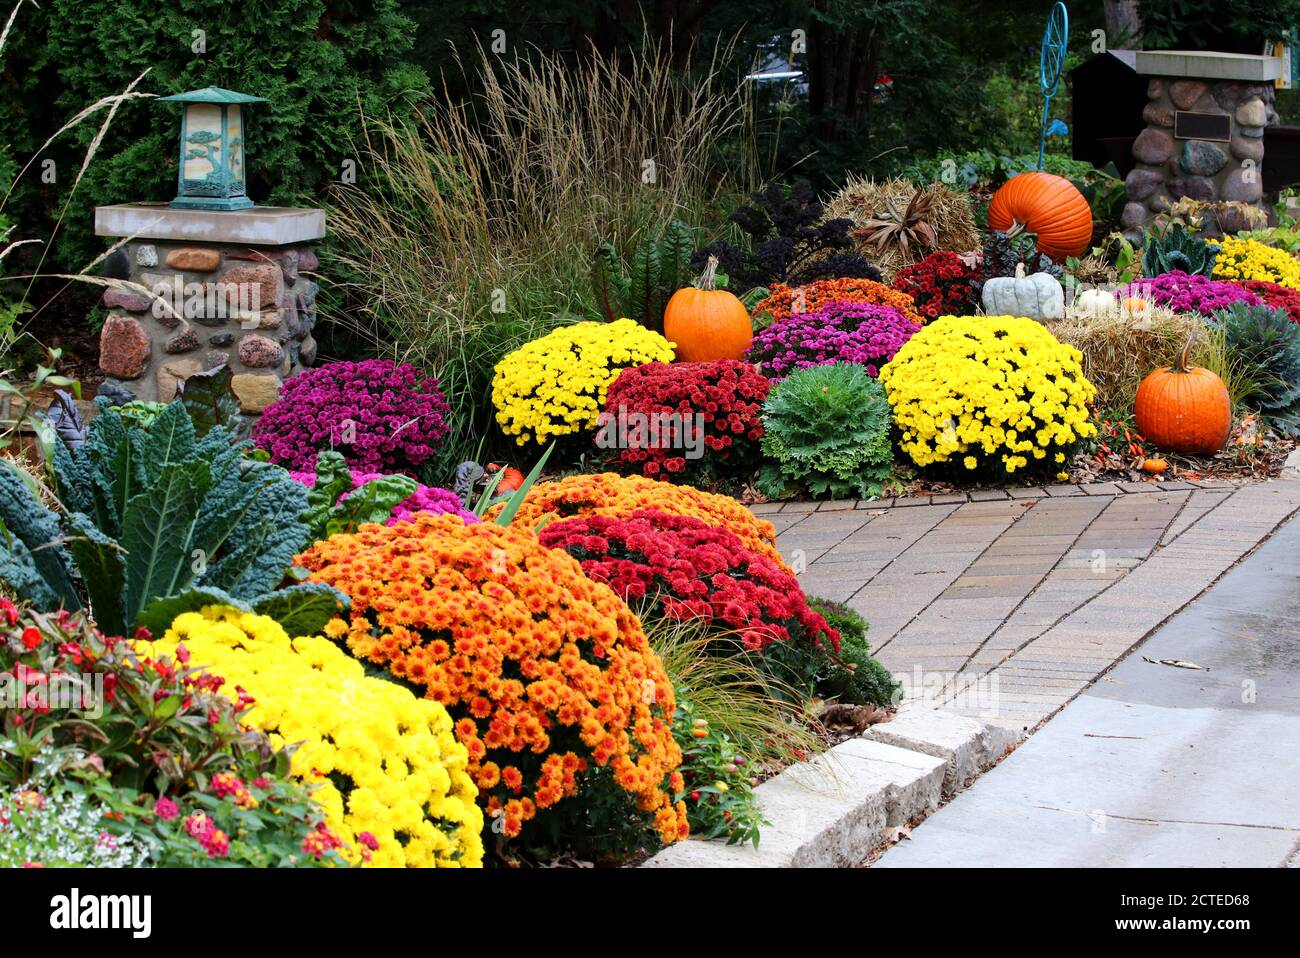 Colors of autumn background. Bright colors fall season outdoor decoration with potted chrysanthemums and unusual pumpkins on the hay bricks as a part Stock Photo